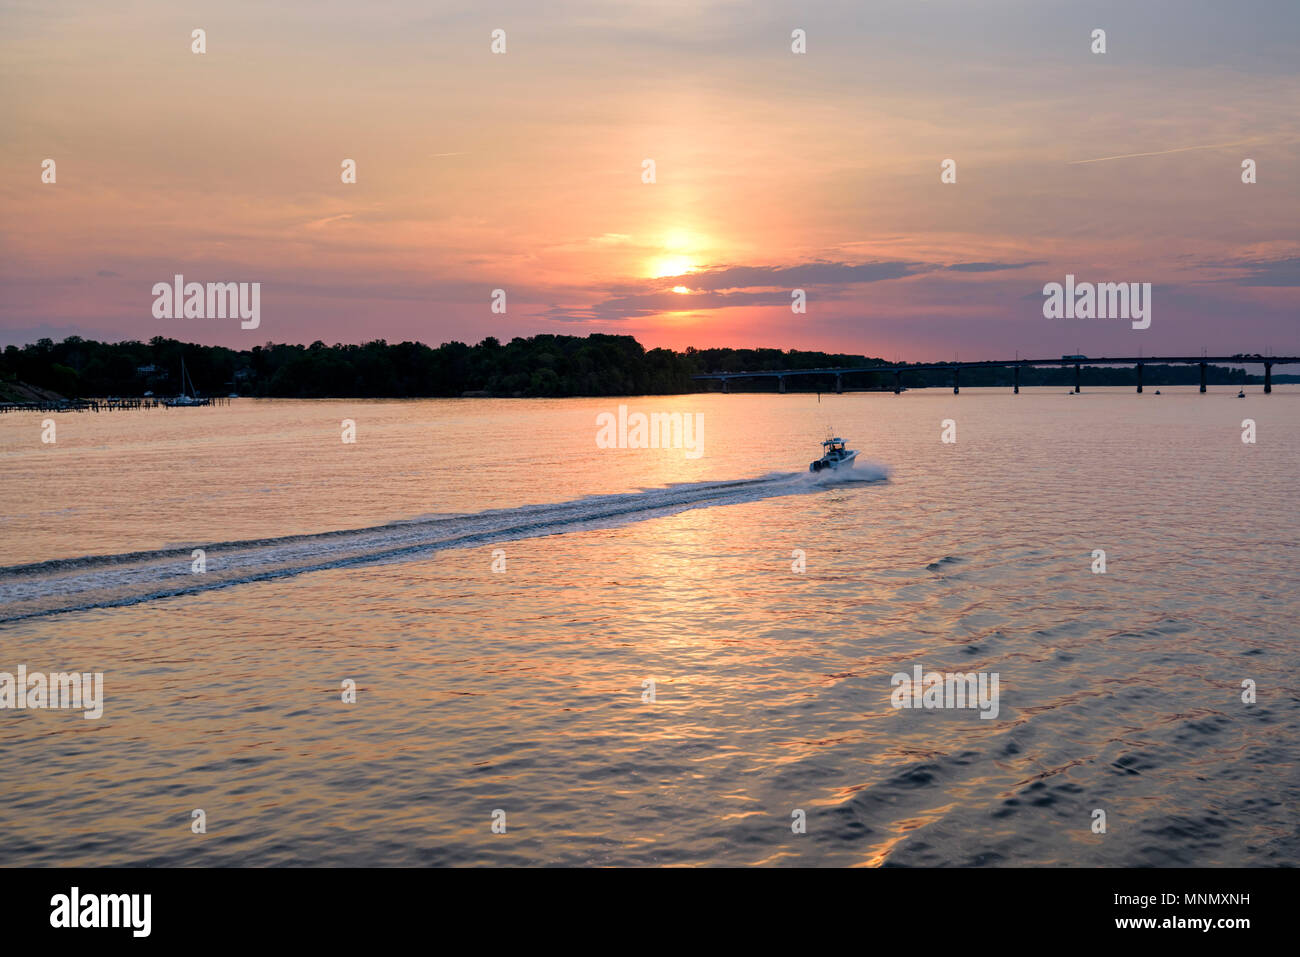 A speedboat travels on the Severn River near Annapolis, Maryland. - Stock Image